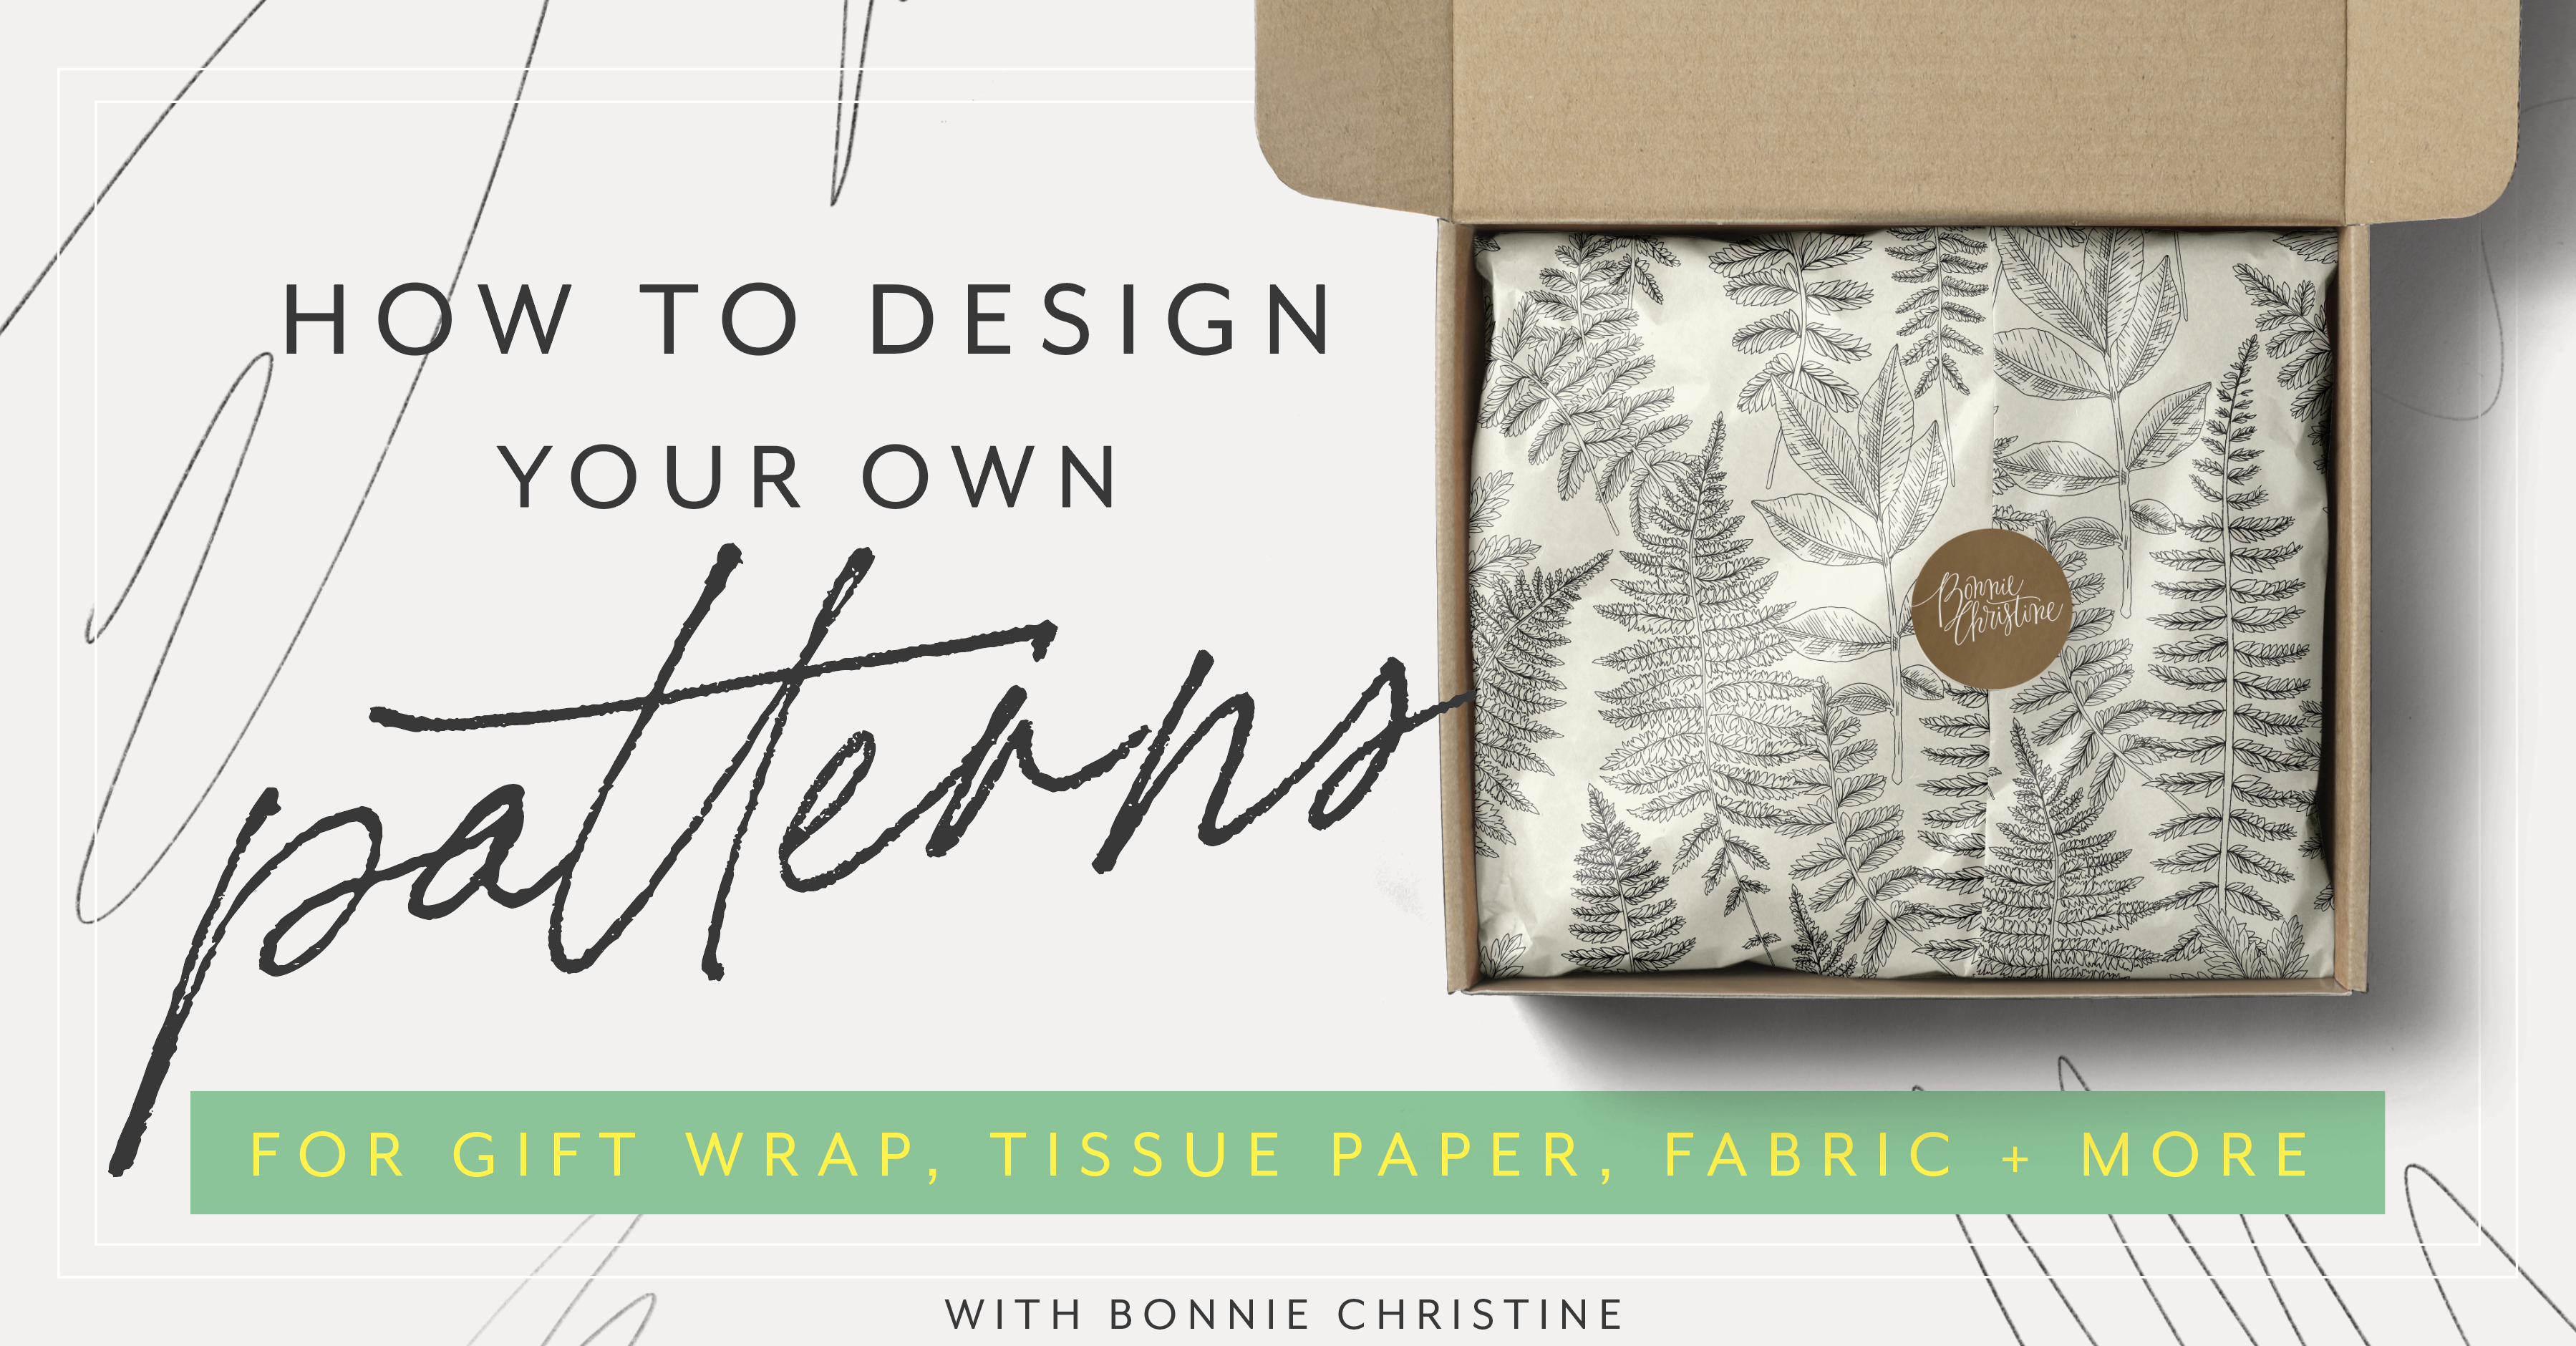 Immersion Course 2020: How to Design your Own Patterns for gift wrap, tissue paper, fabric and more, with Bonnie Christine